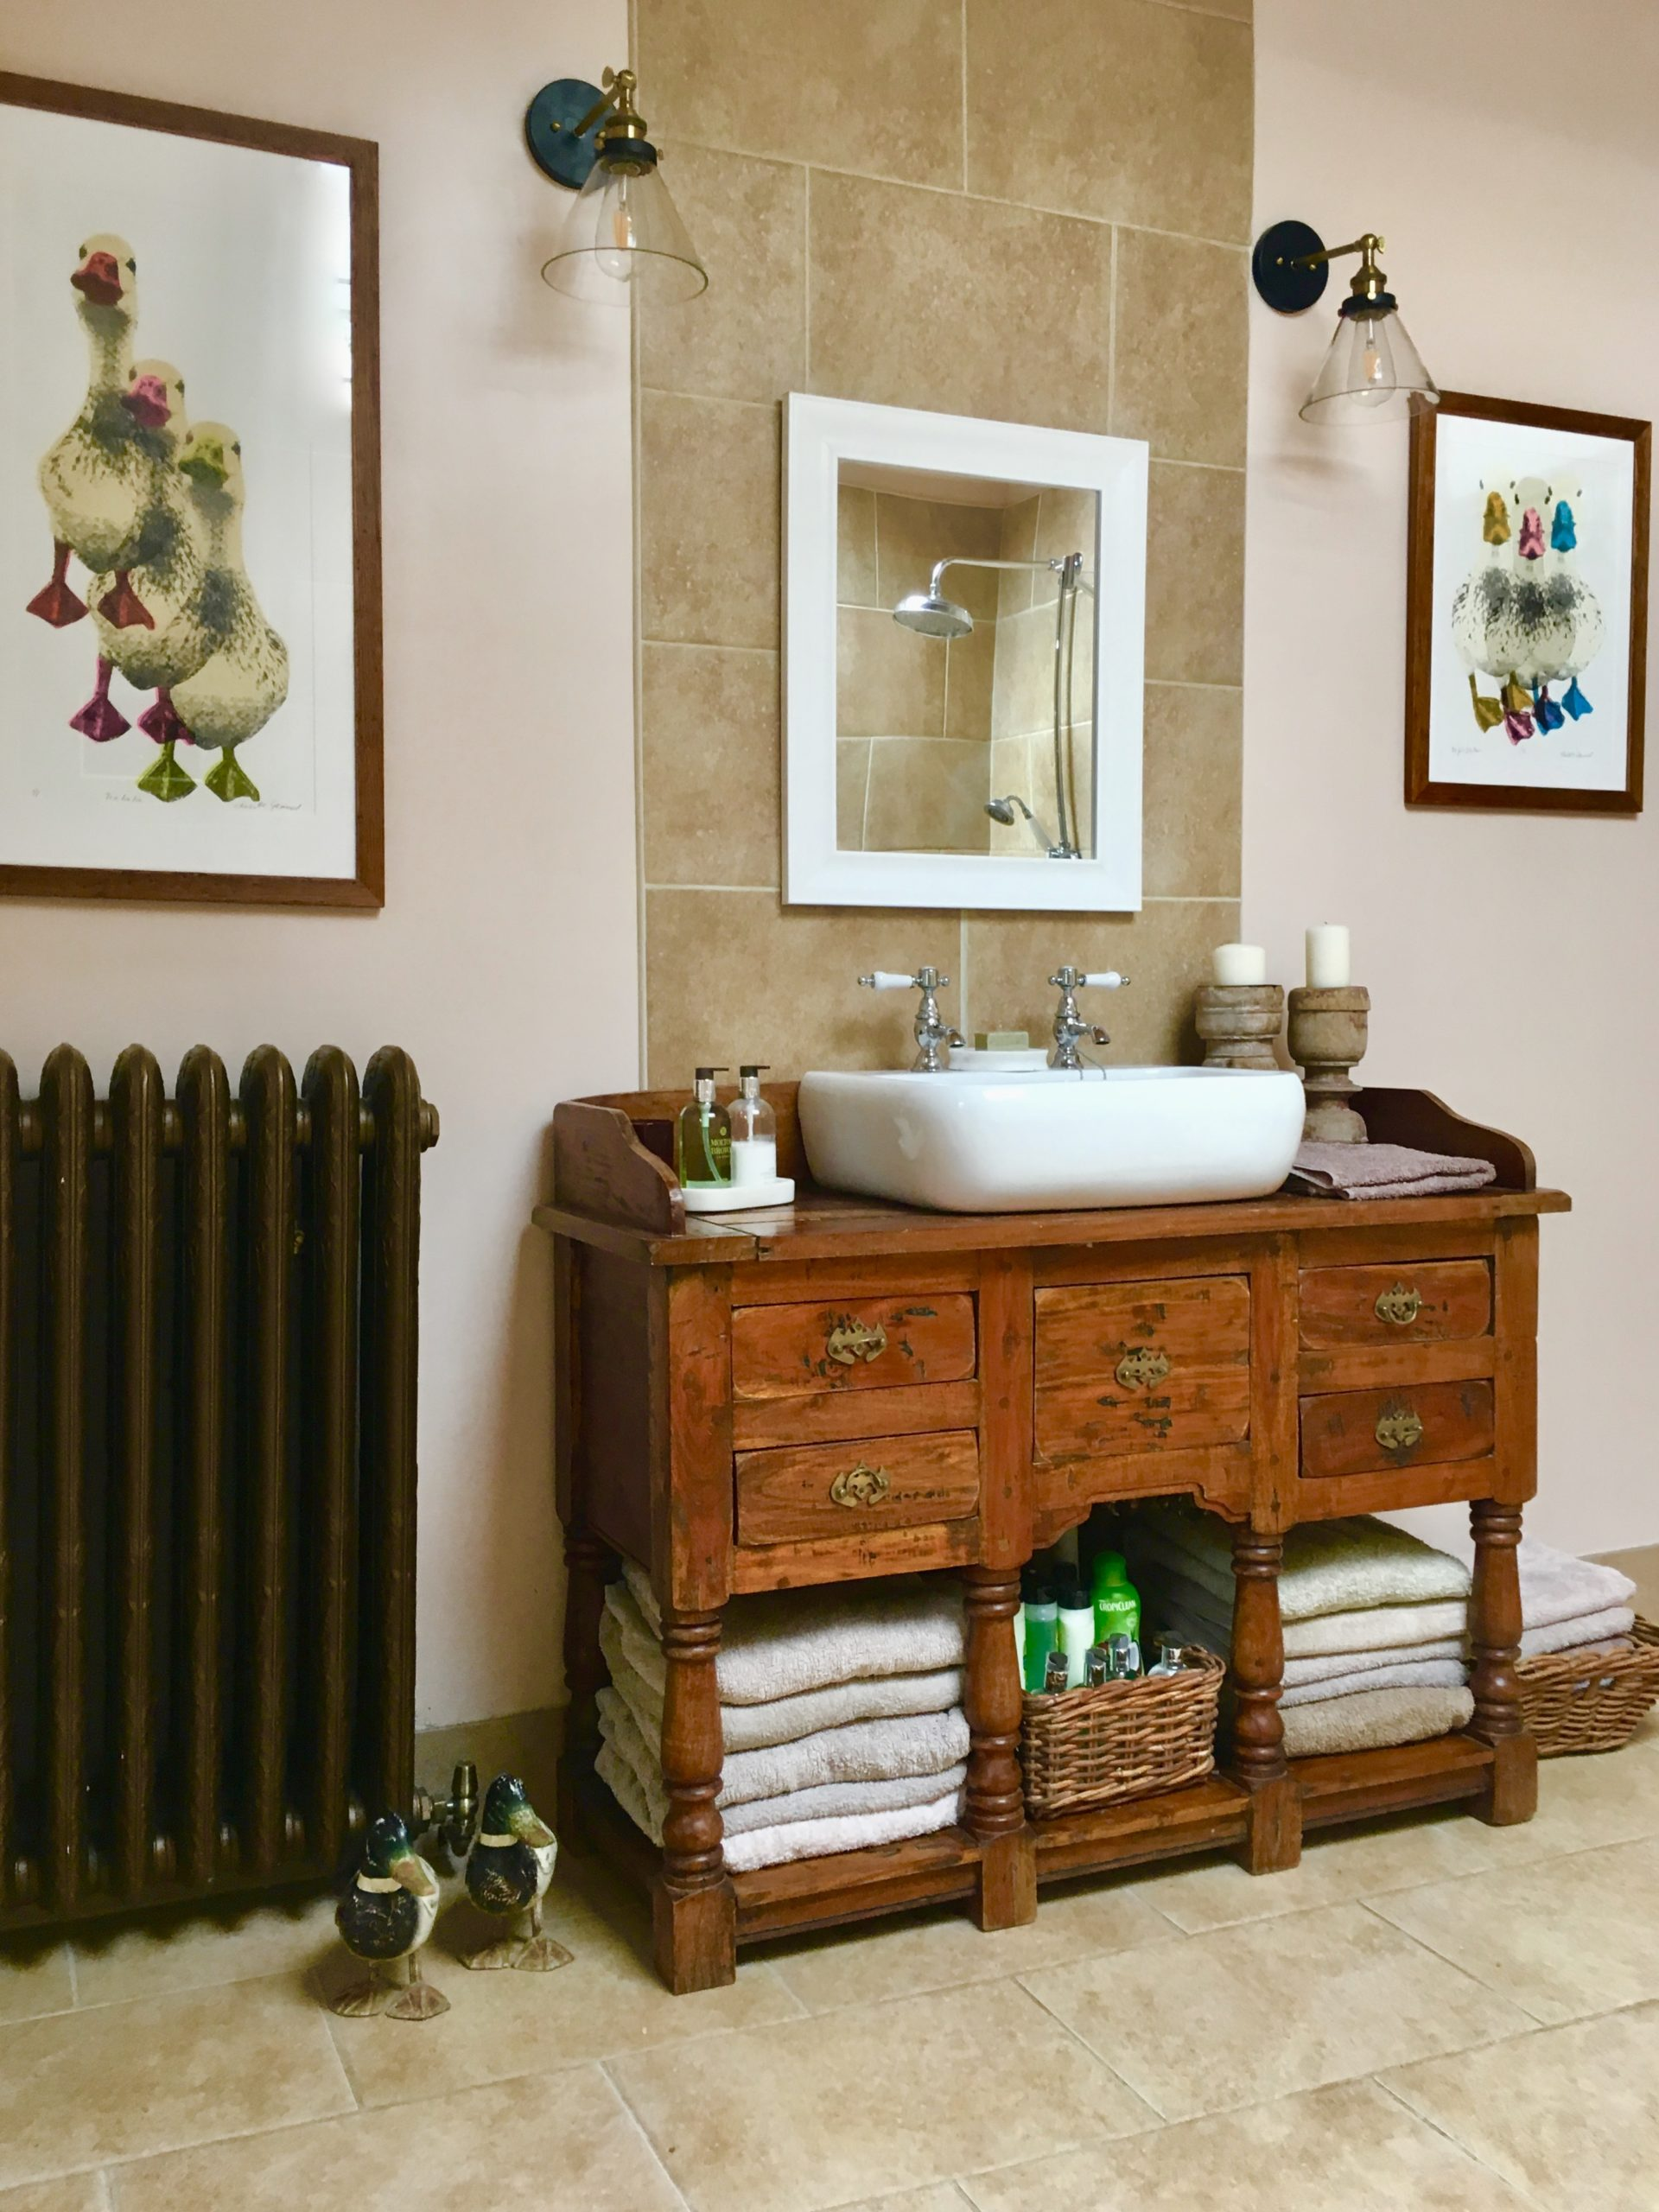 Rustic wetroom industrial lighting traditional vanity unit cast iron radiator